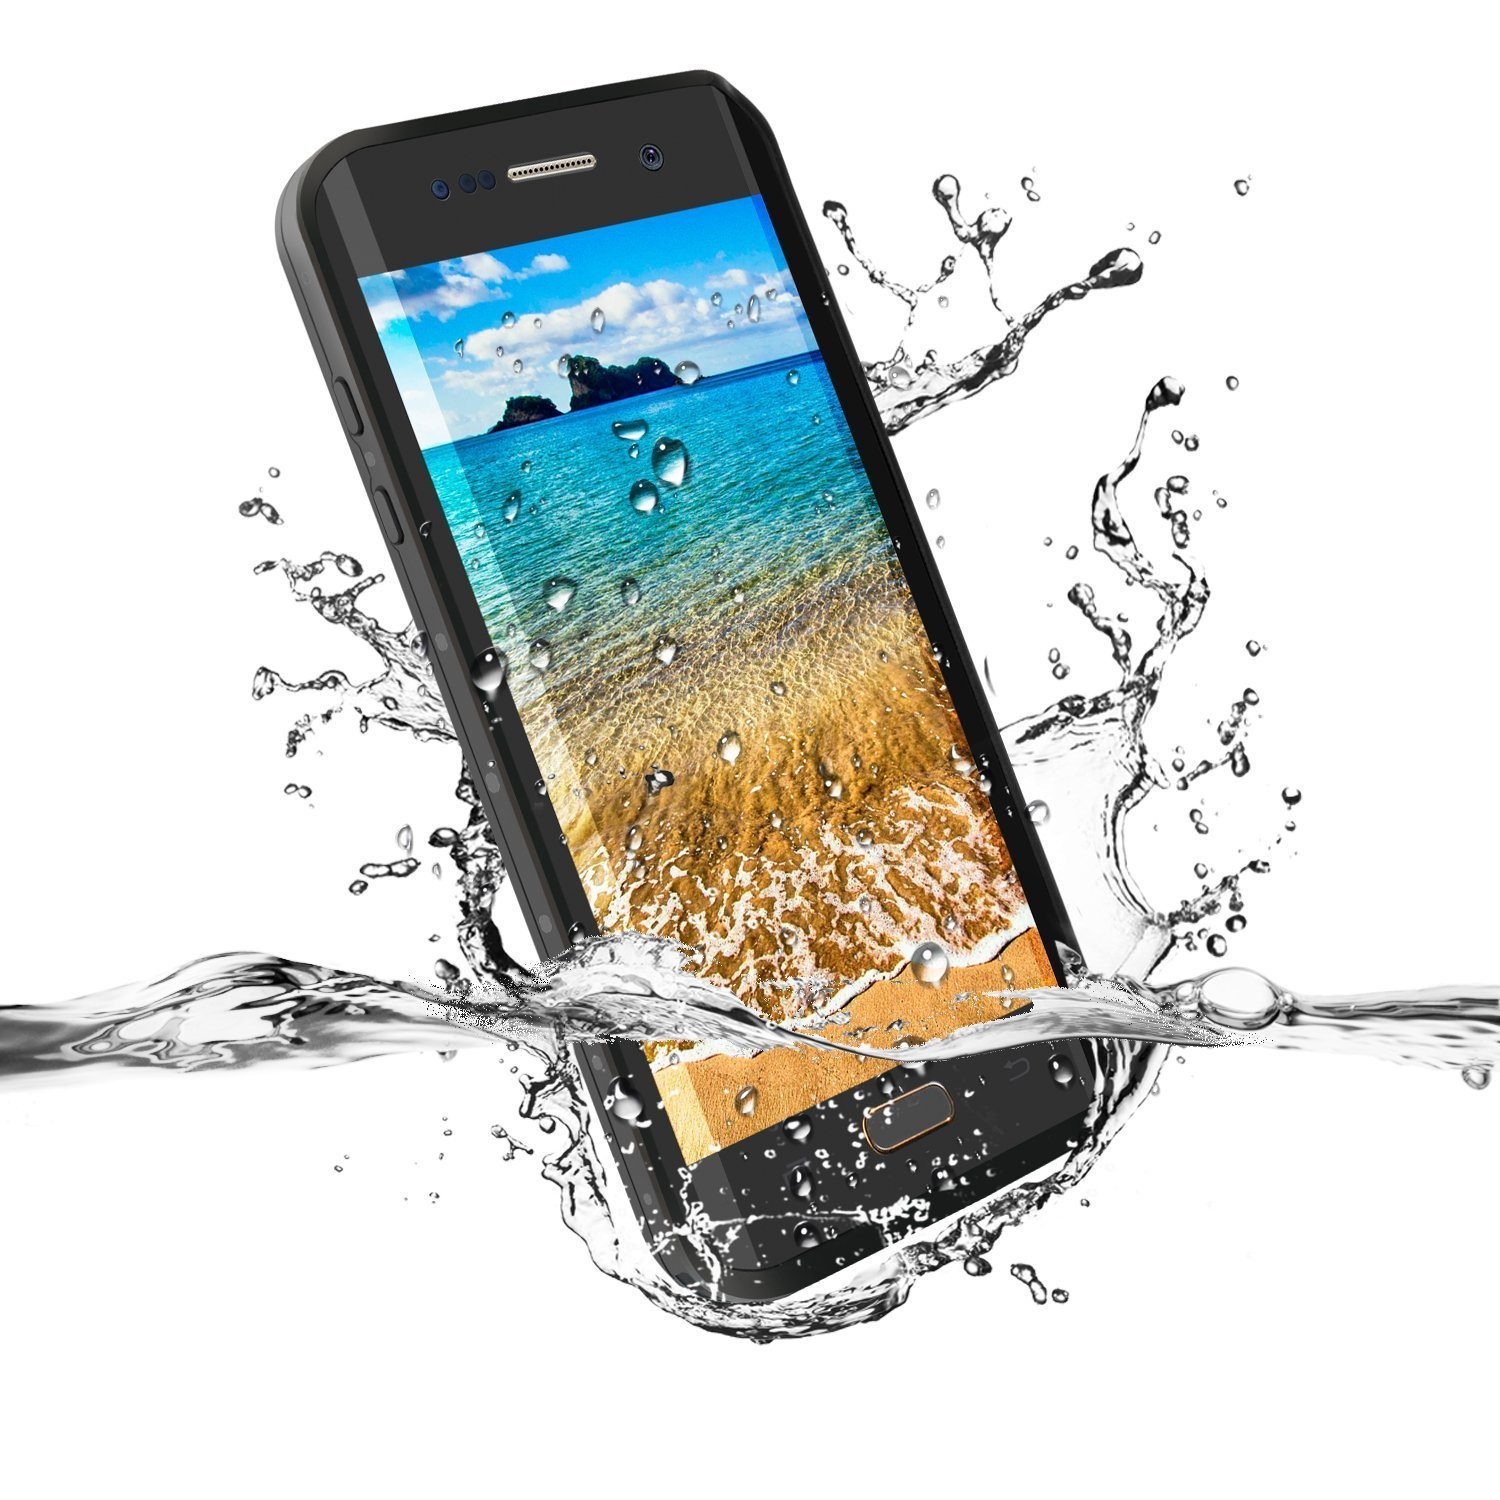 S7 Edge Waterproof Case For Coque Samsung S7 Edge Case Water Proof 360 Protector Shockproof Case